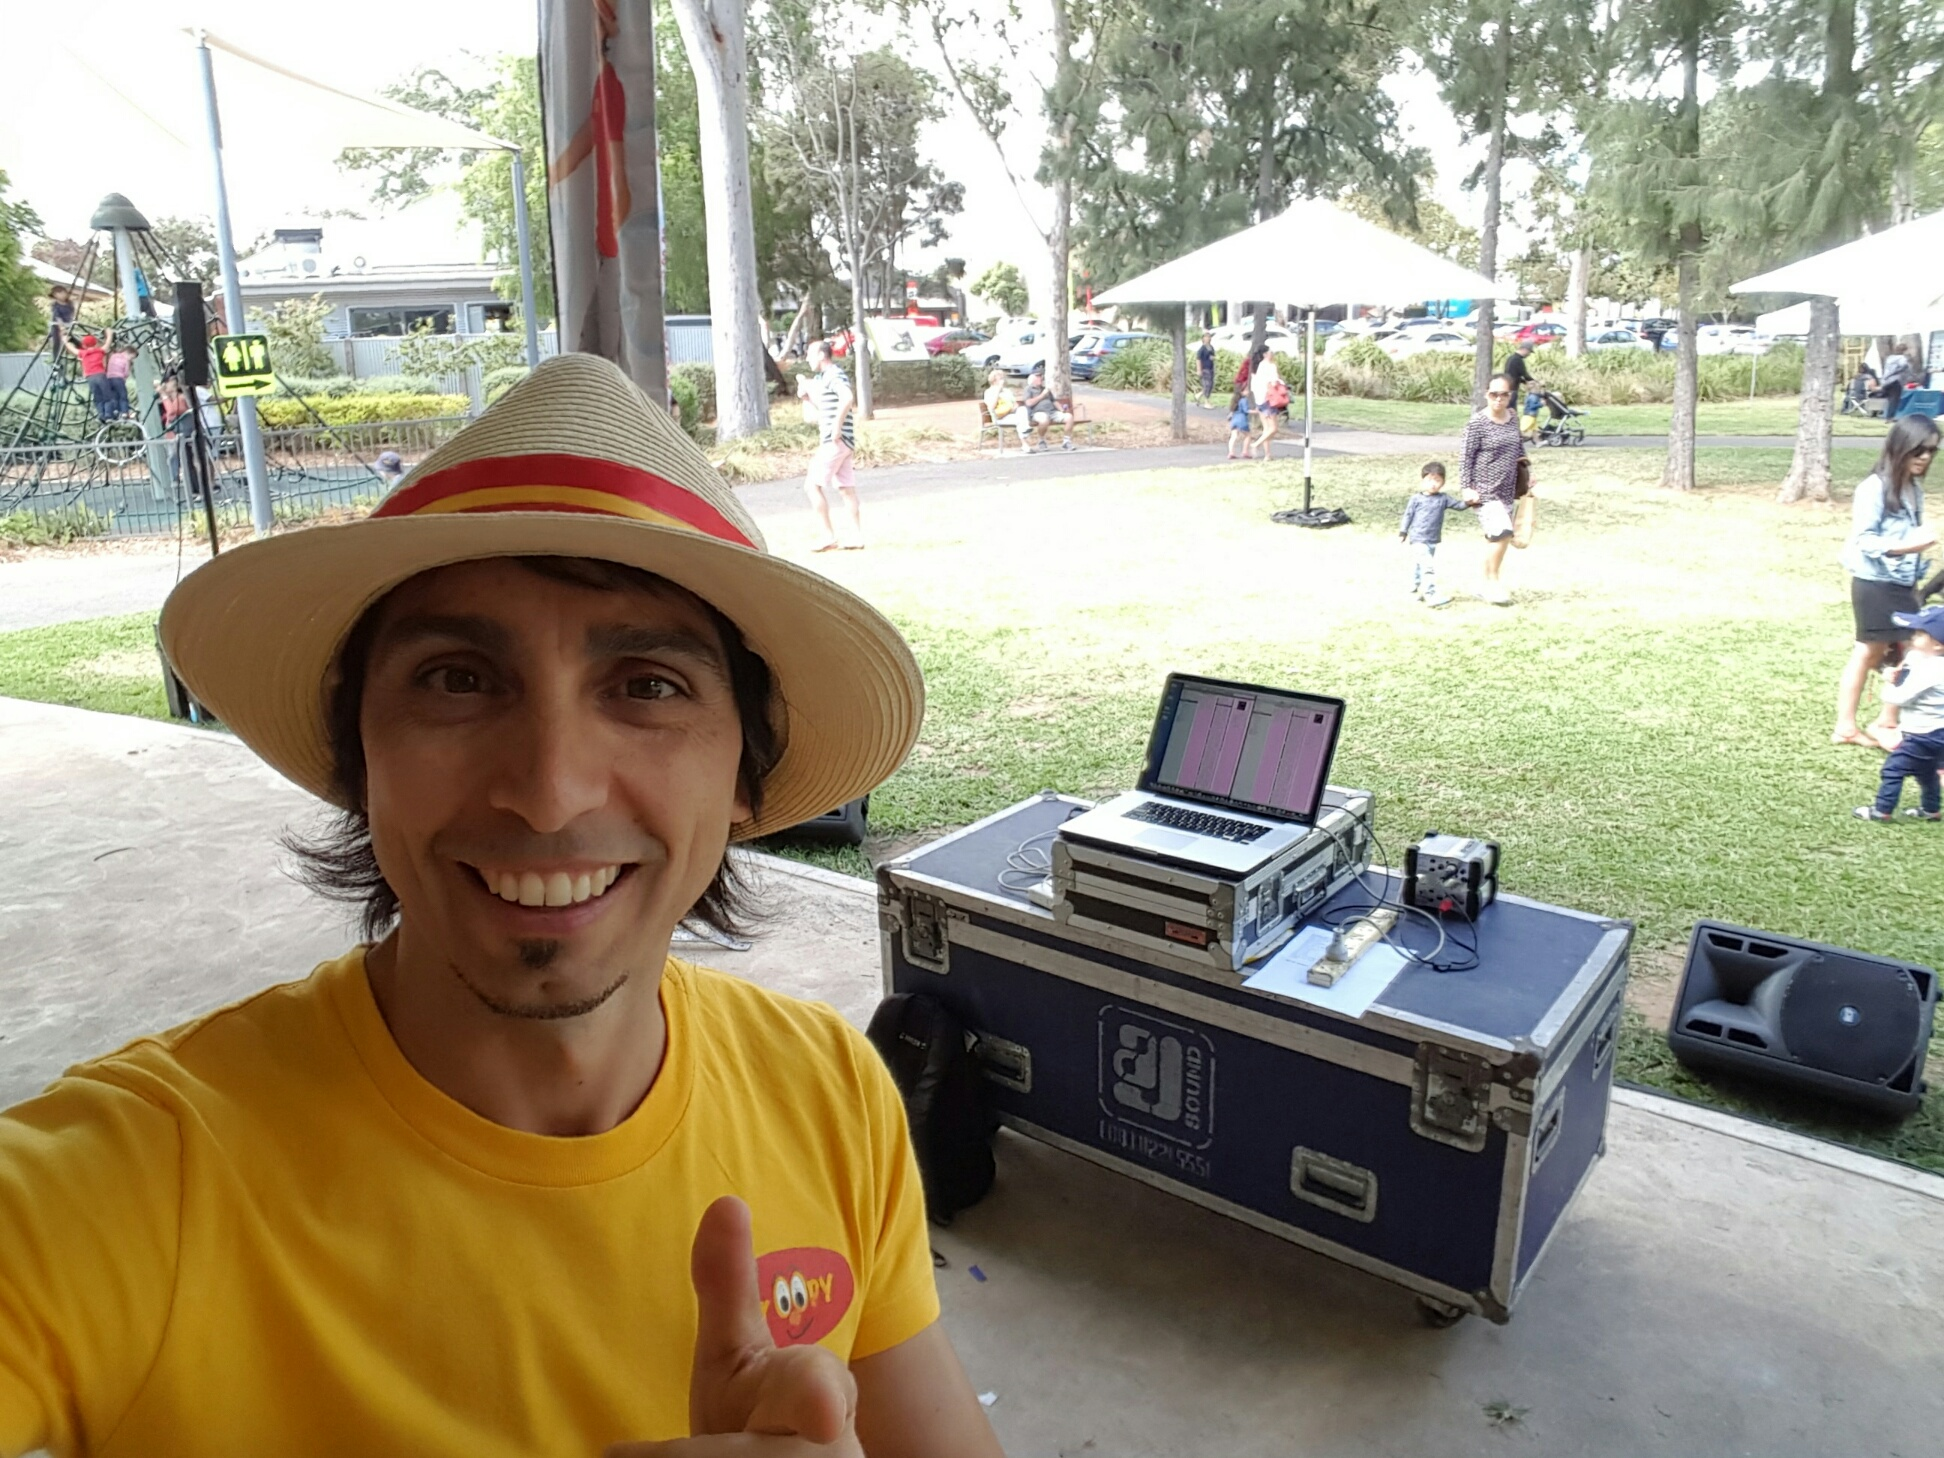 St Peters Fair Mr Oopy as DJ performing Pop Tunes